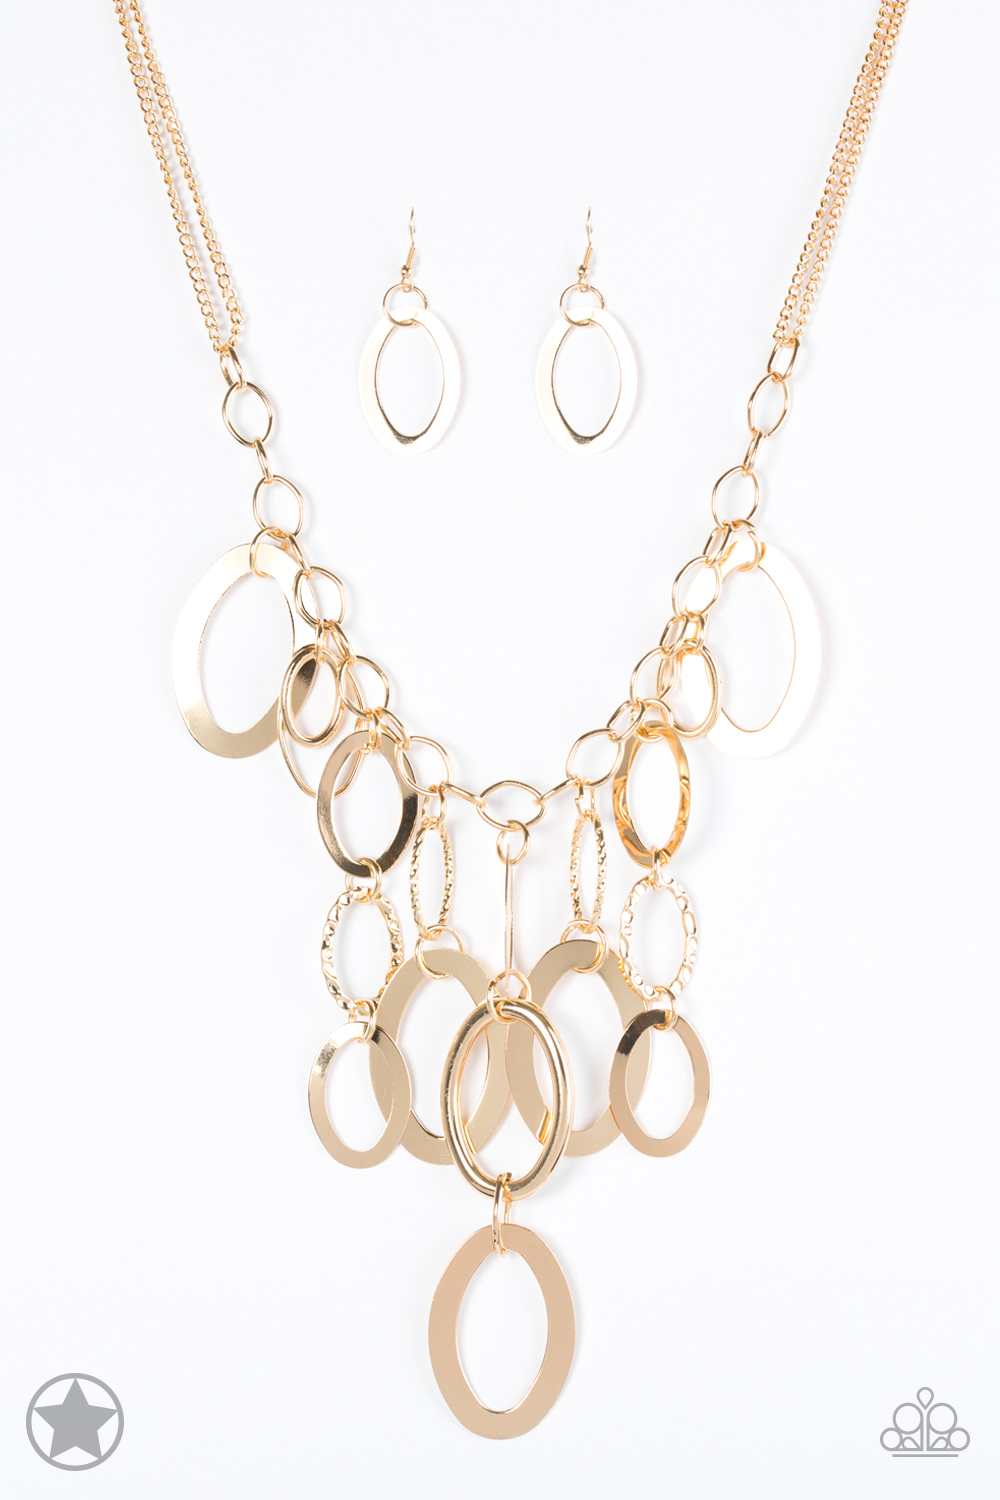 A Golden Spell Necklace and Earring Set $5.00 www.my-bling.com